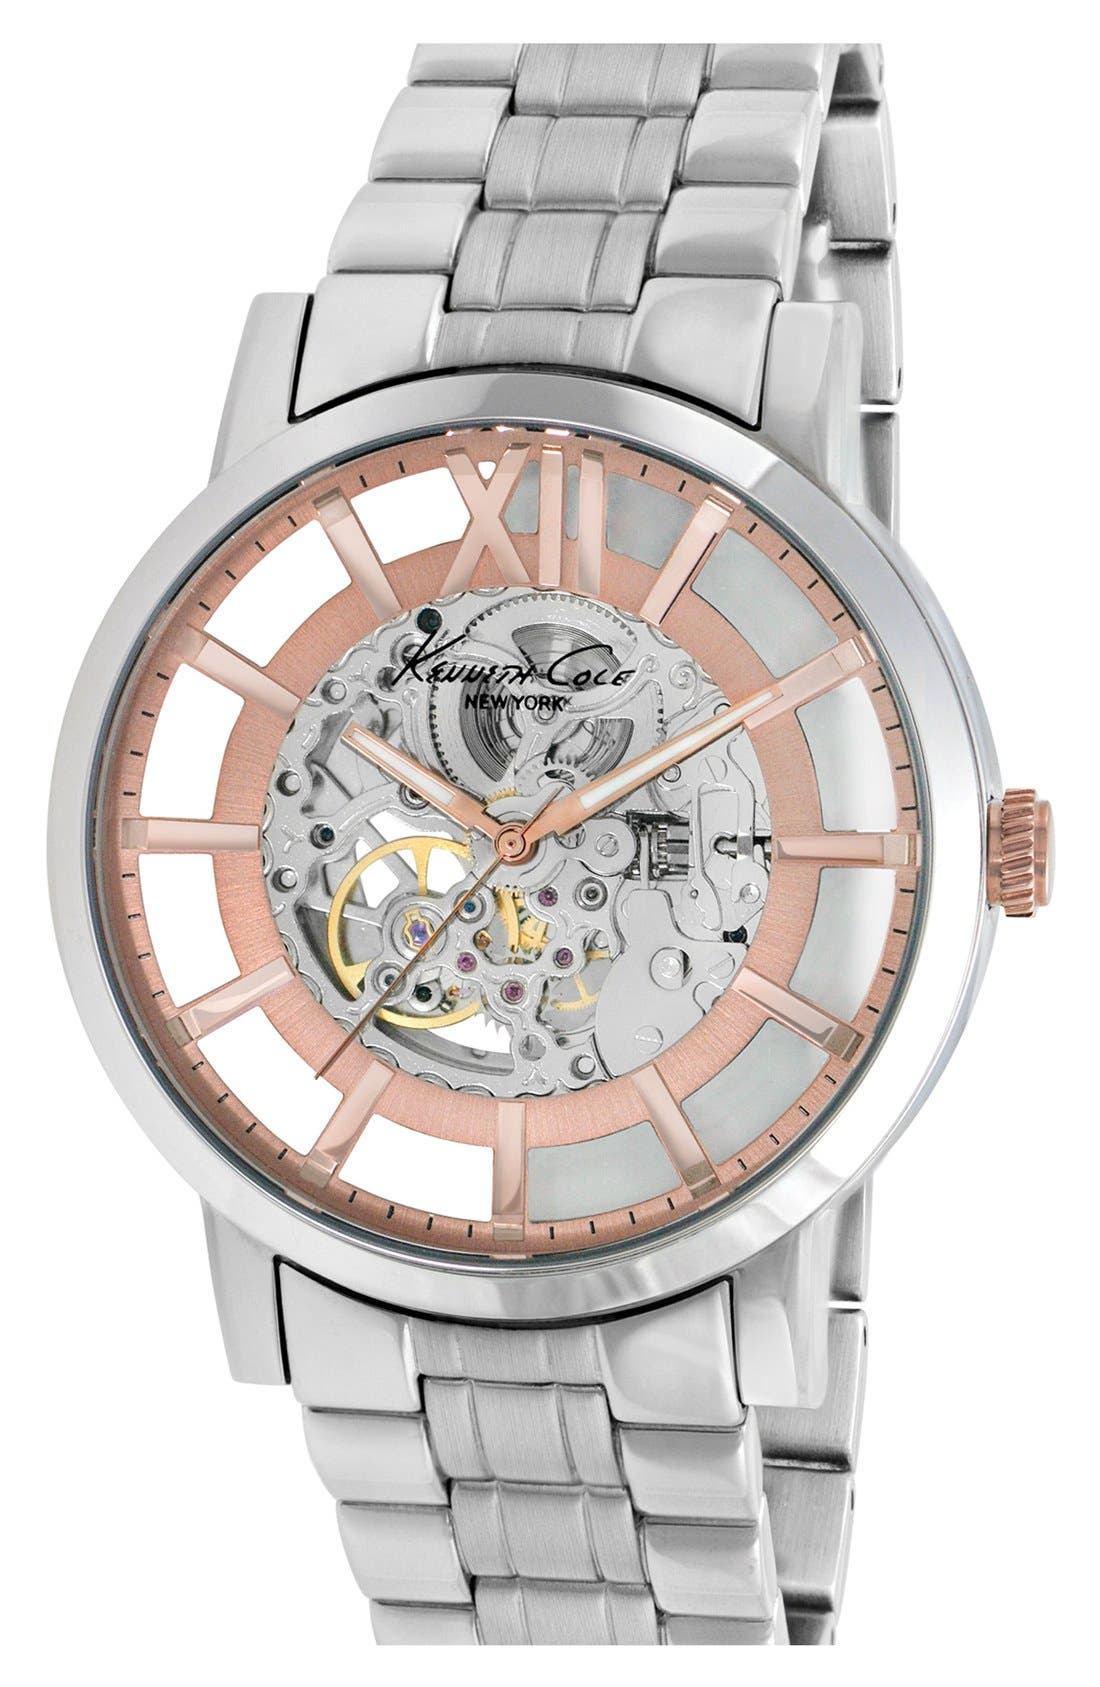 Main Image - Kenneth Cole New York Round Automatic Bracelet Watch, 46mm